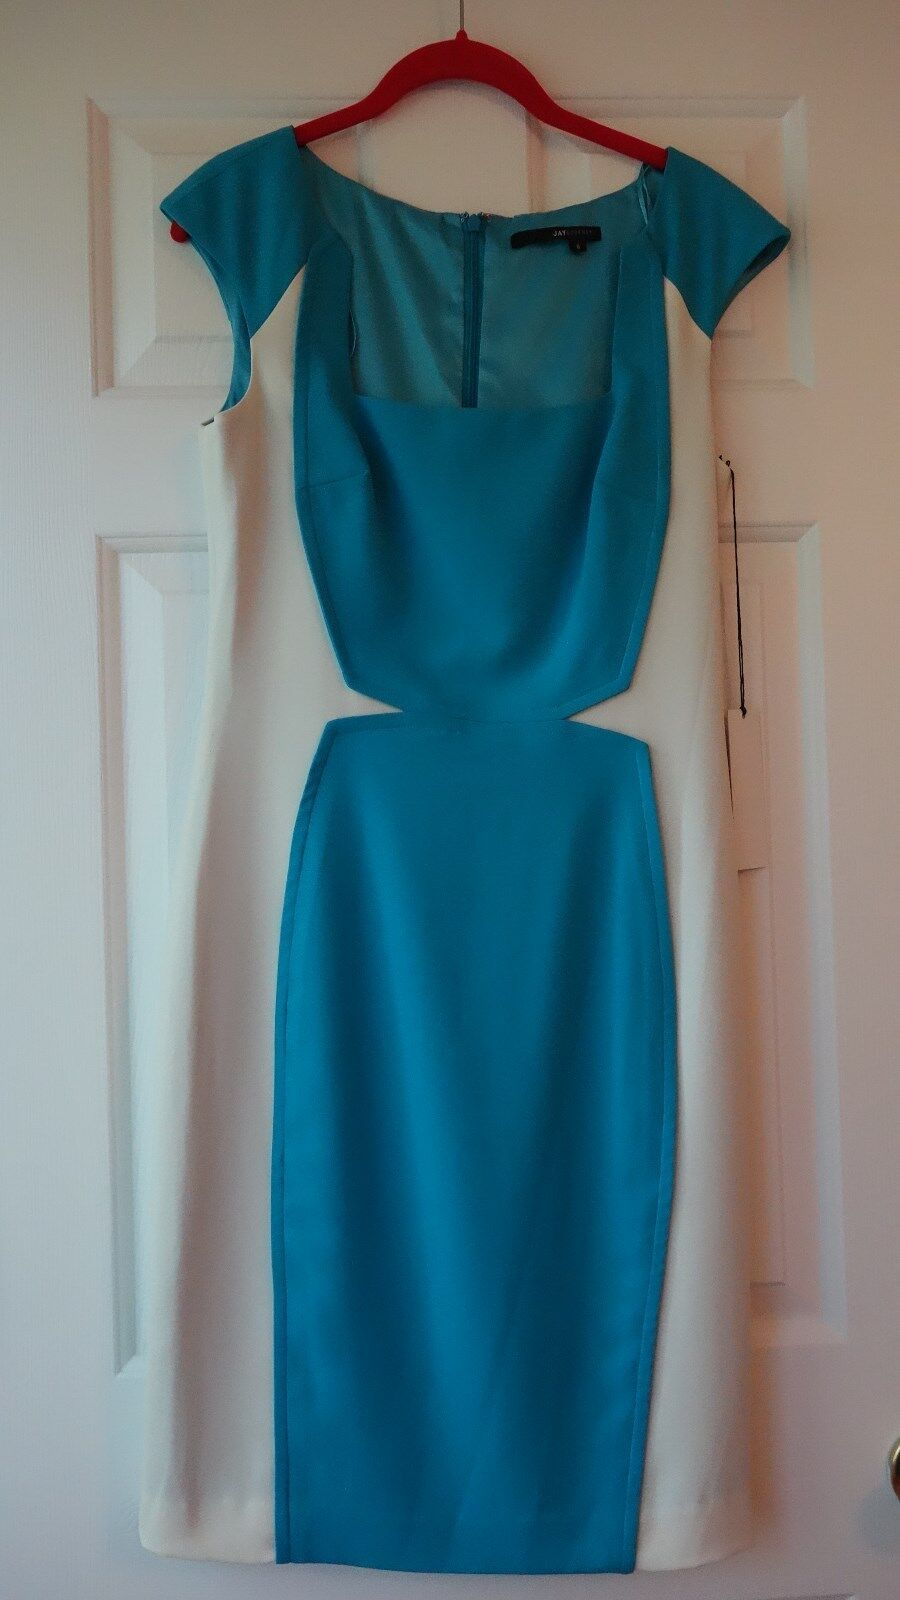 NEW JAY GODFREY   5% SPANDEX  WOMEN'S DRESS sz. 8